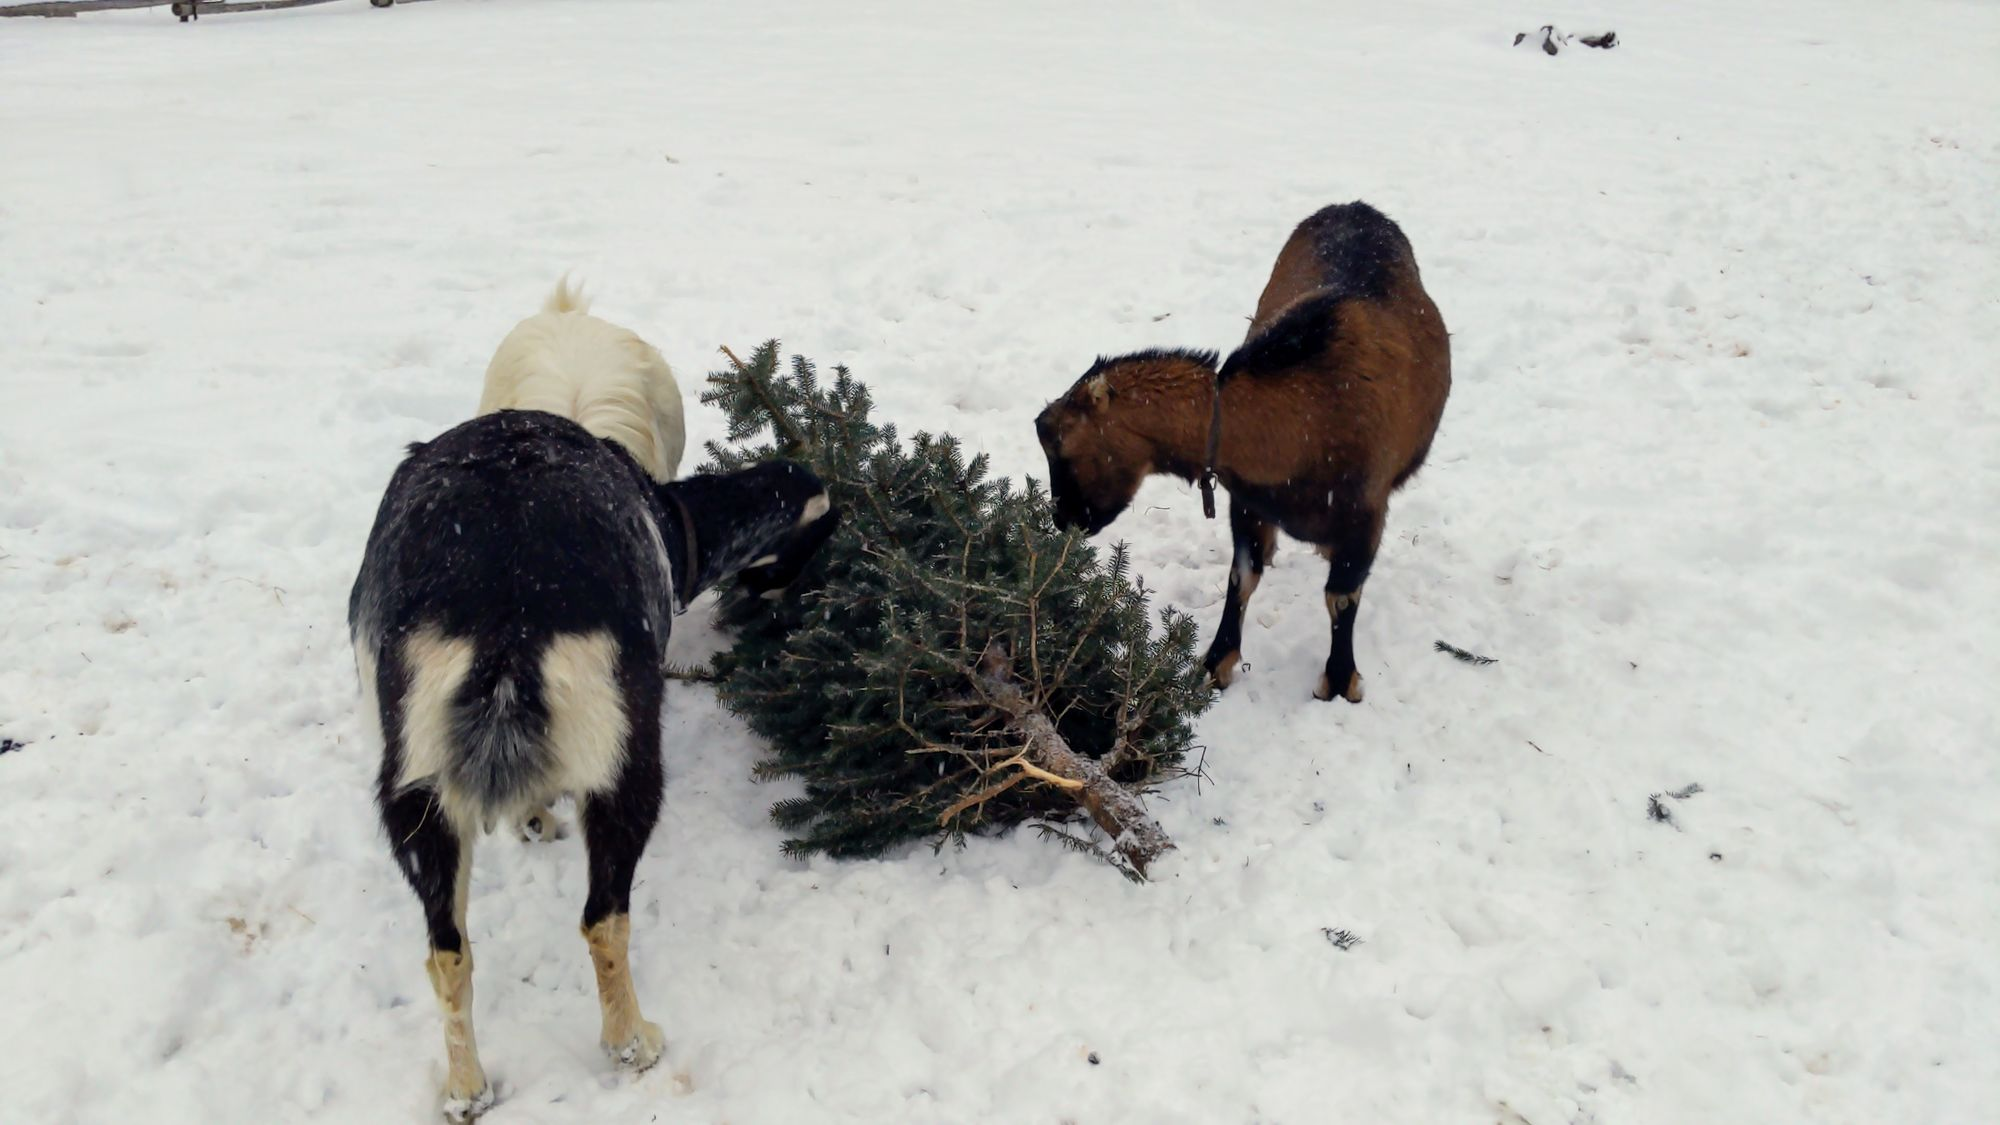 Of goats and conifers